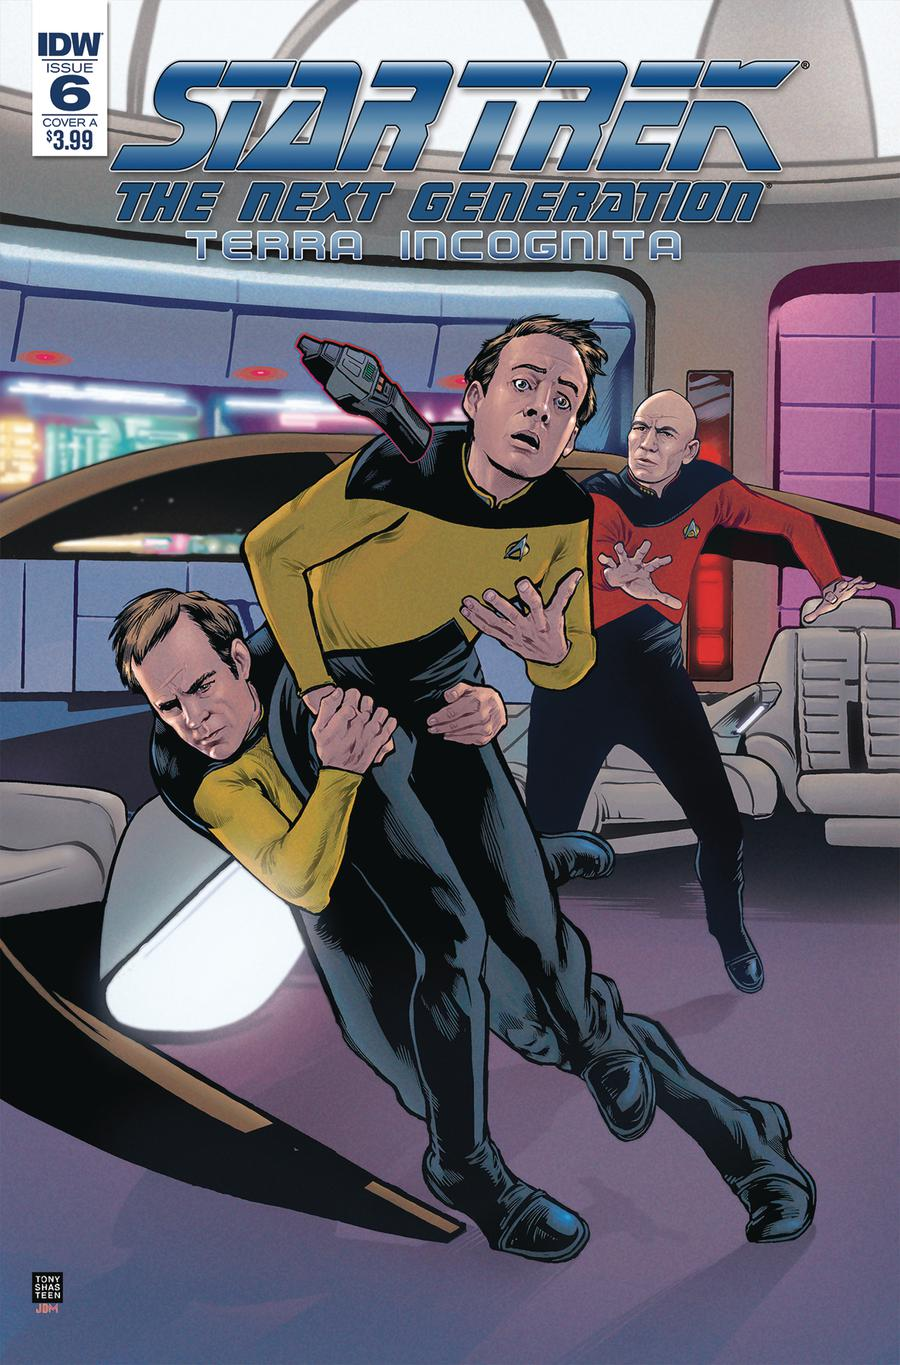 Star Trek The Next Generation Terra Incognita #6 Cover A Regular Tony Shasteen Cover